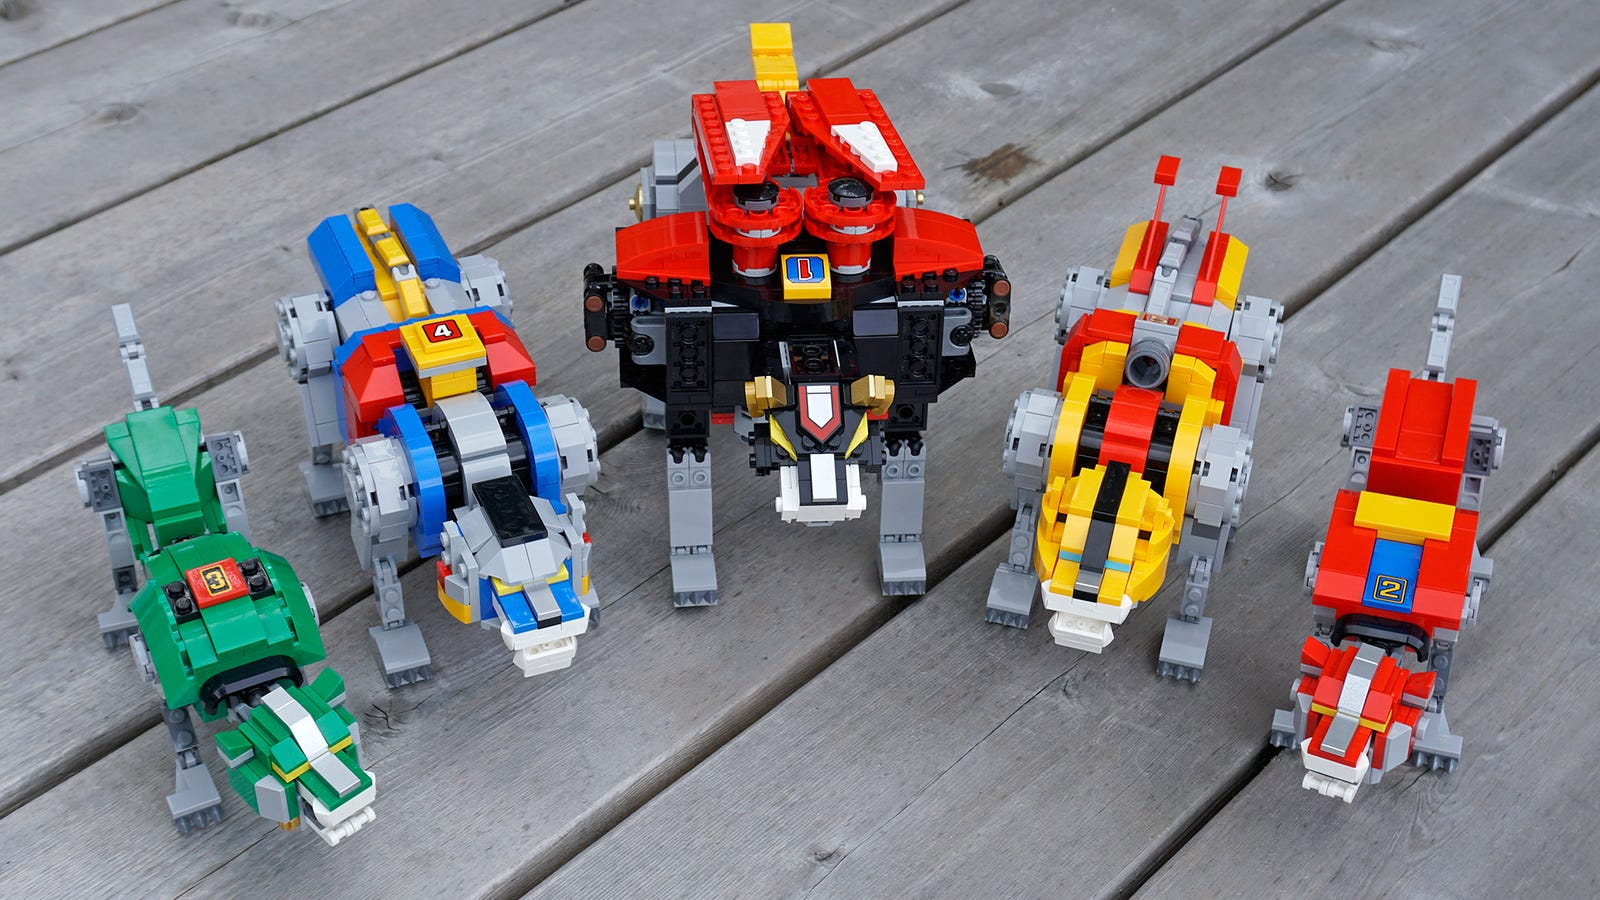 The five robot lions manage to outshine the fully-assembled Voltron.